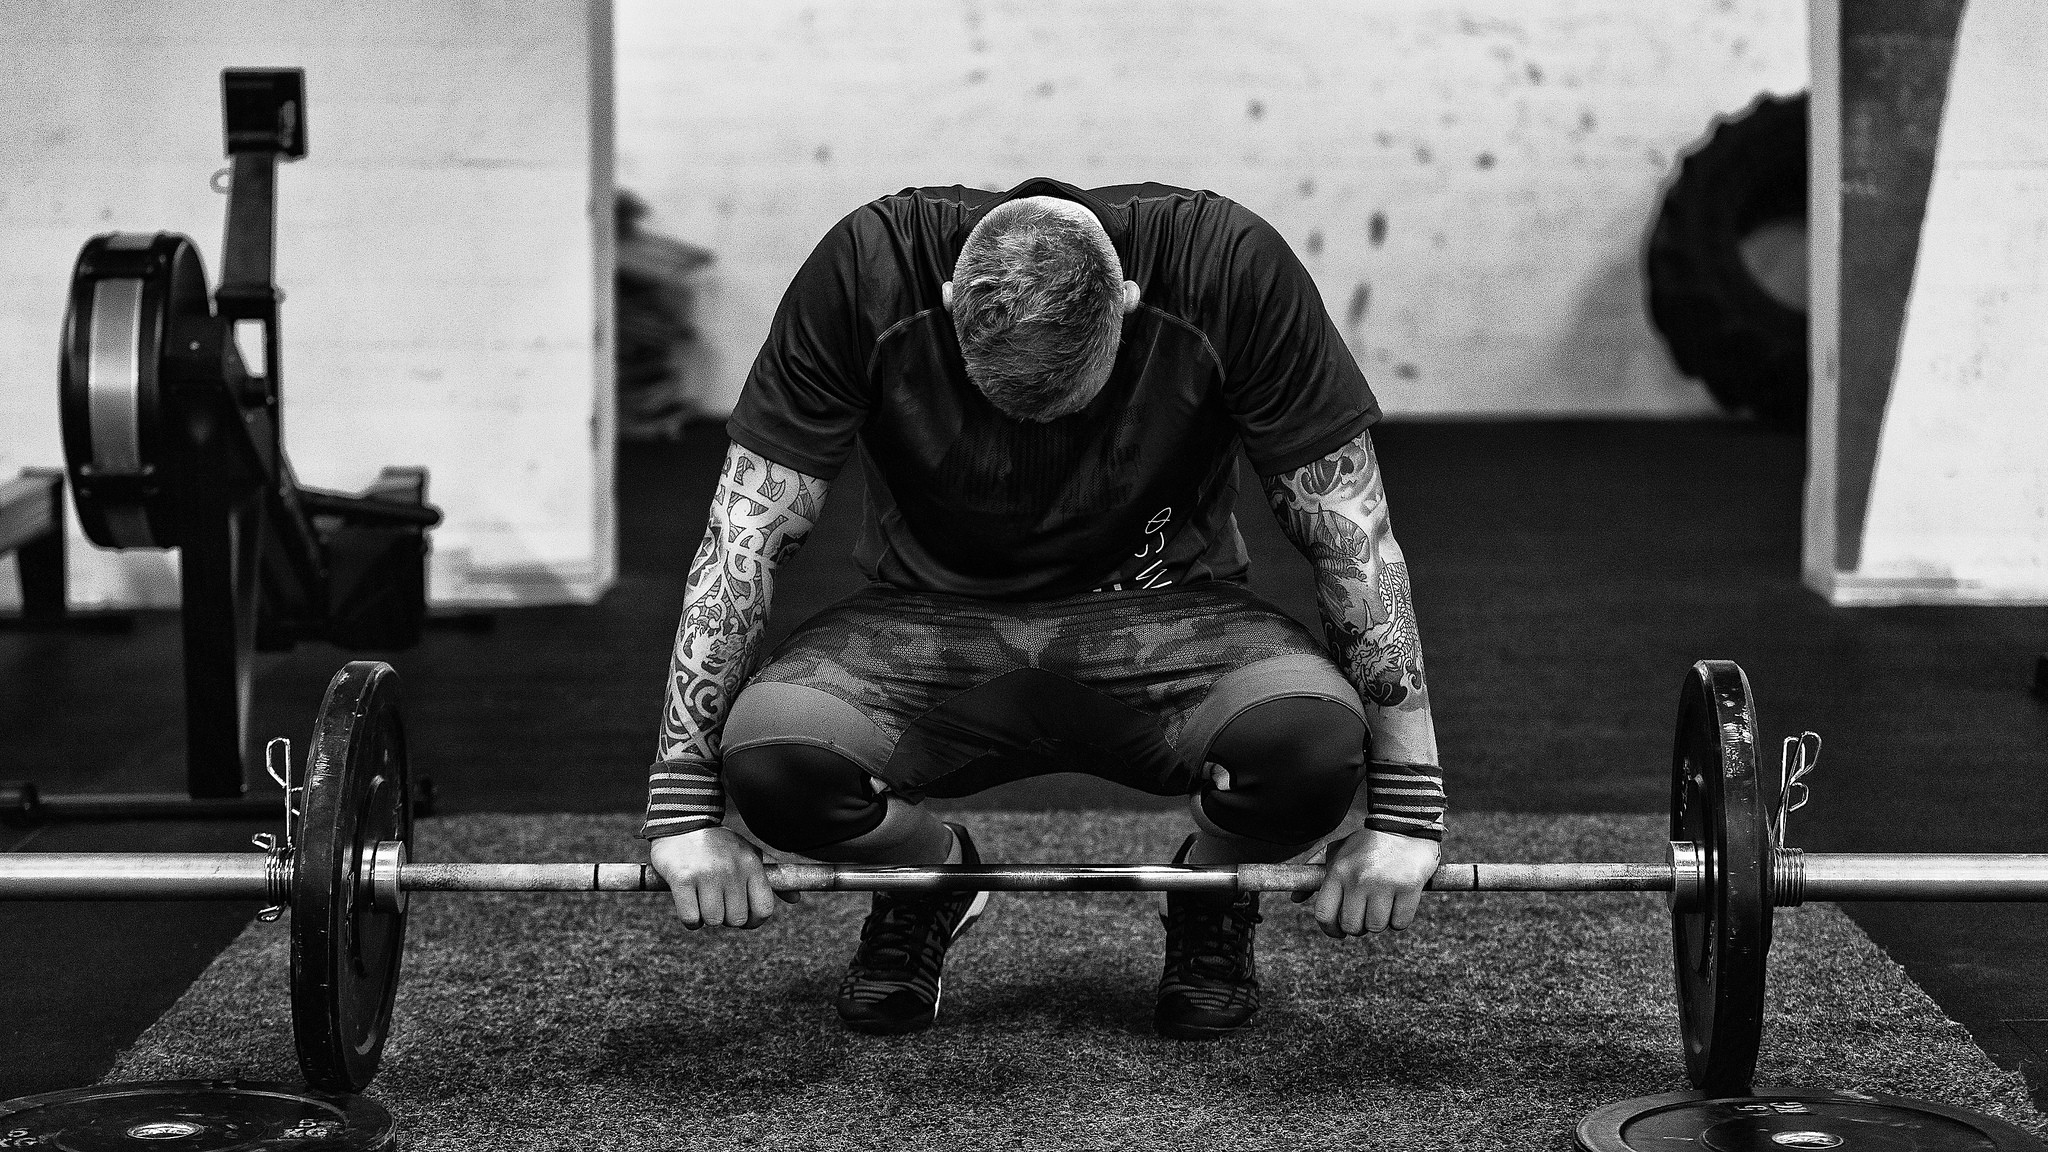 Crossfit Wallpapers 67 images 2048x1152